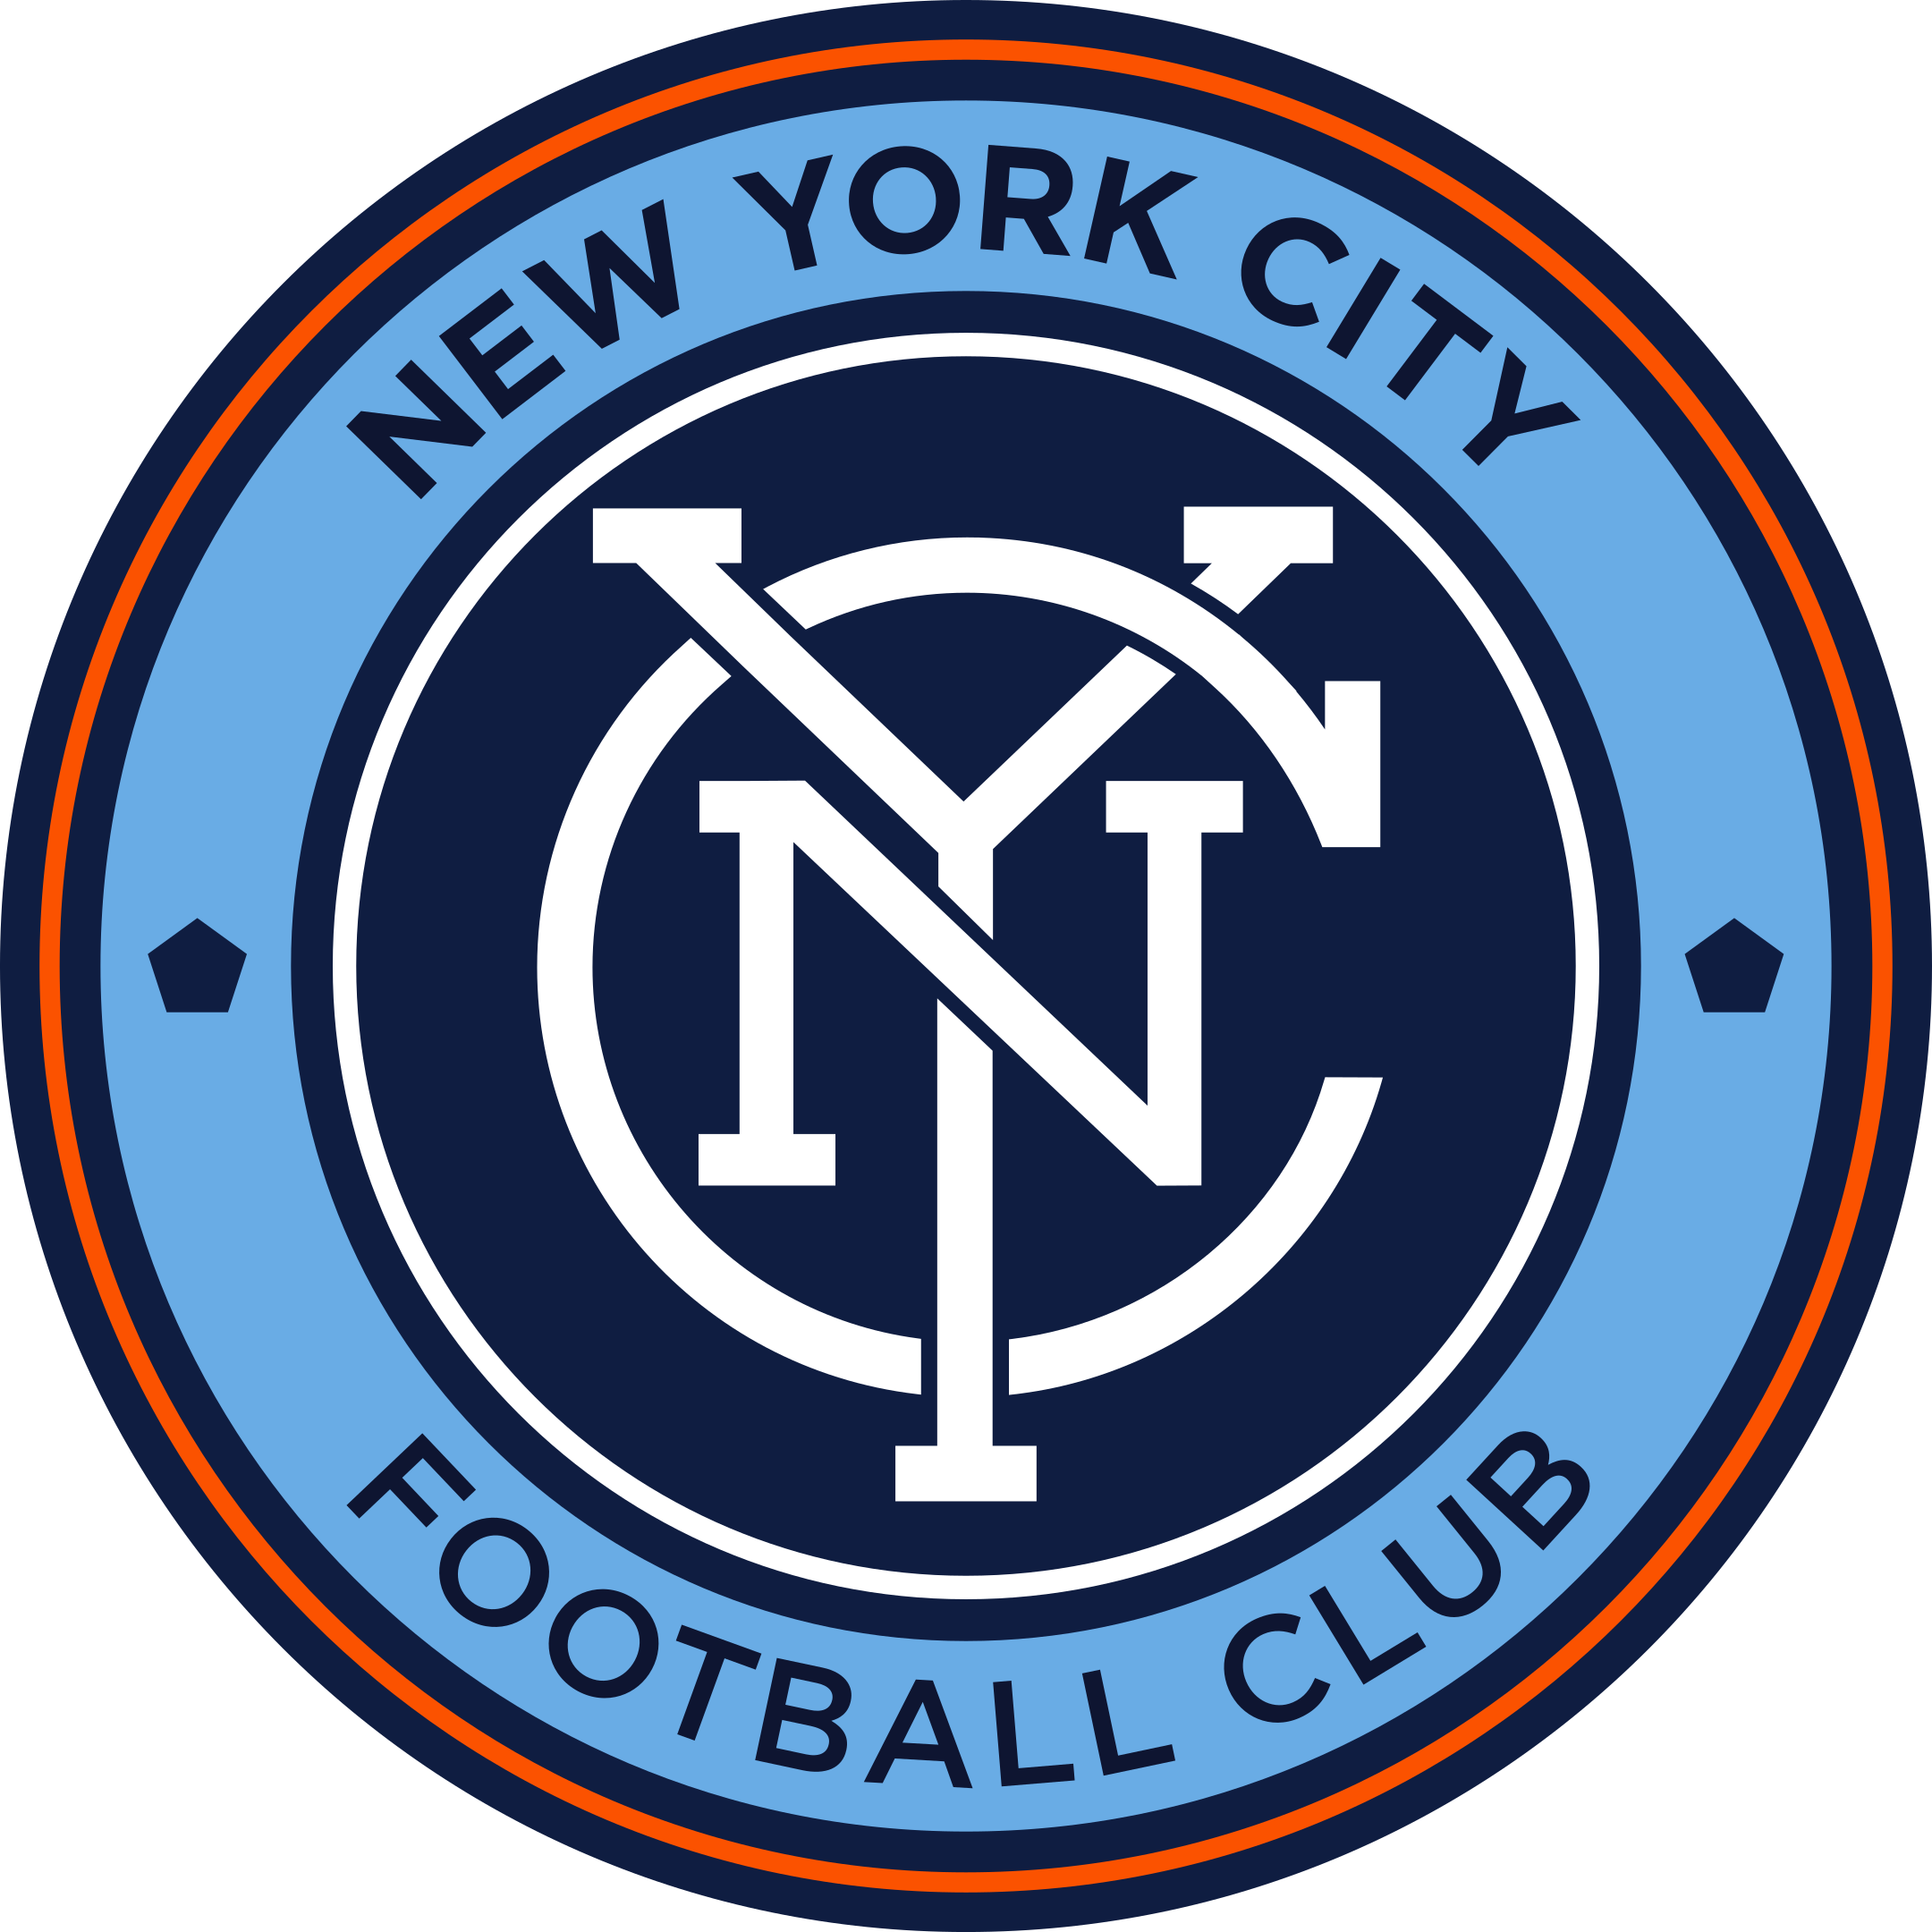 new york city fc logo 1 - New York City FC Logo